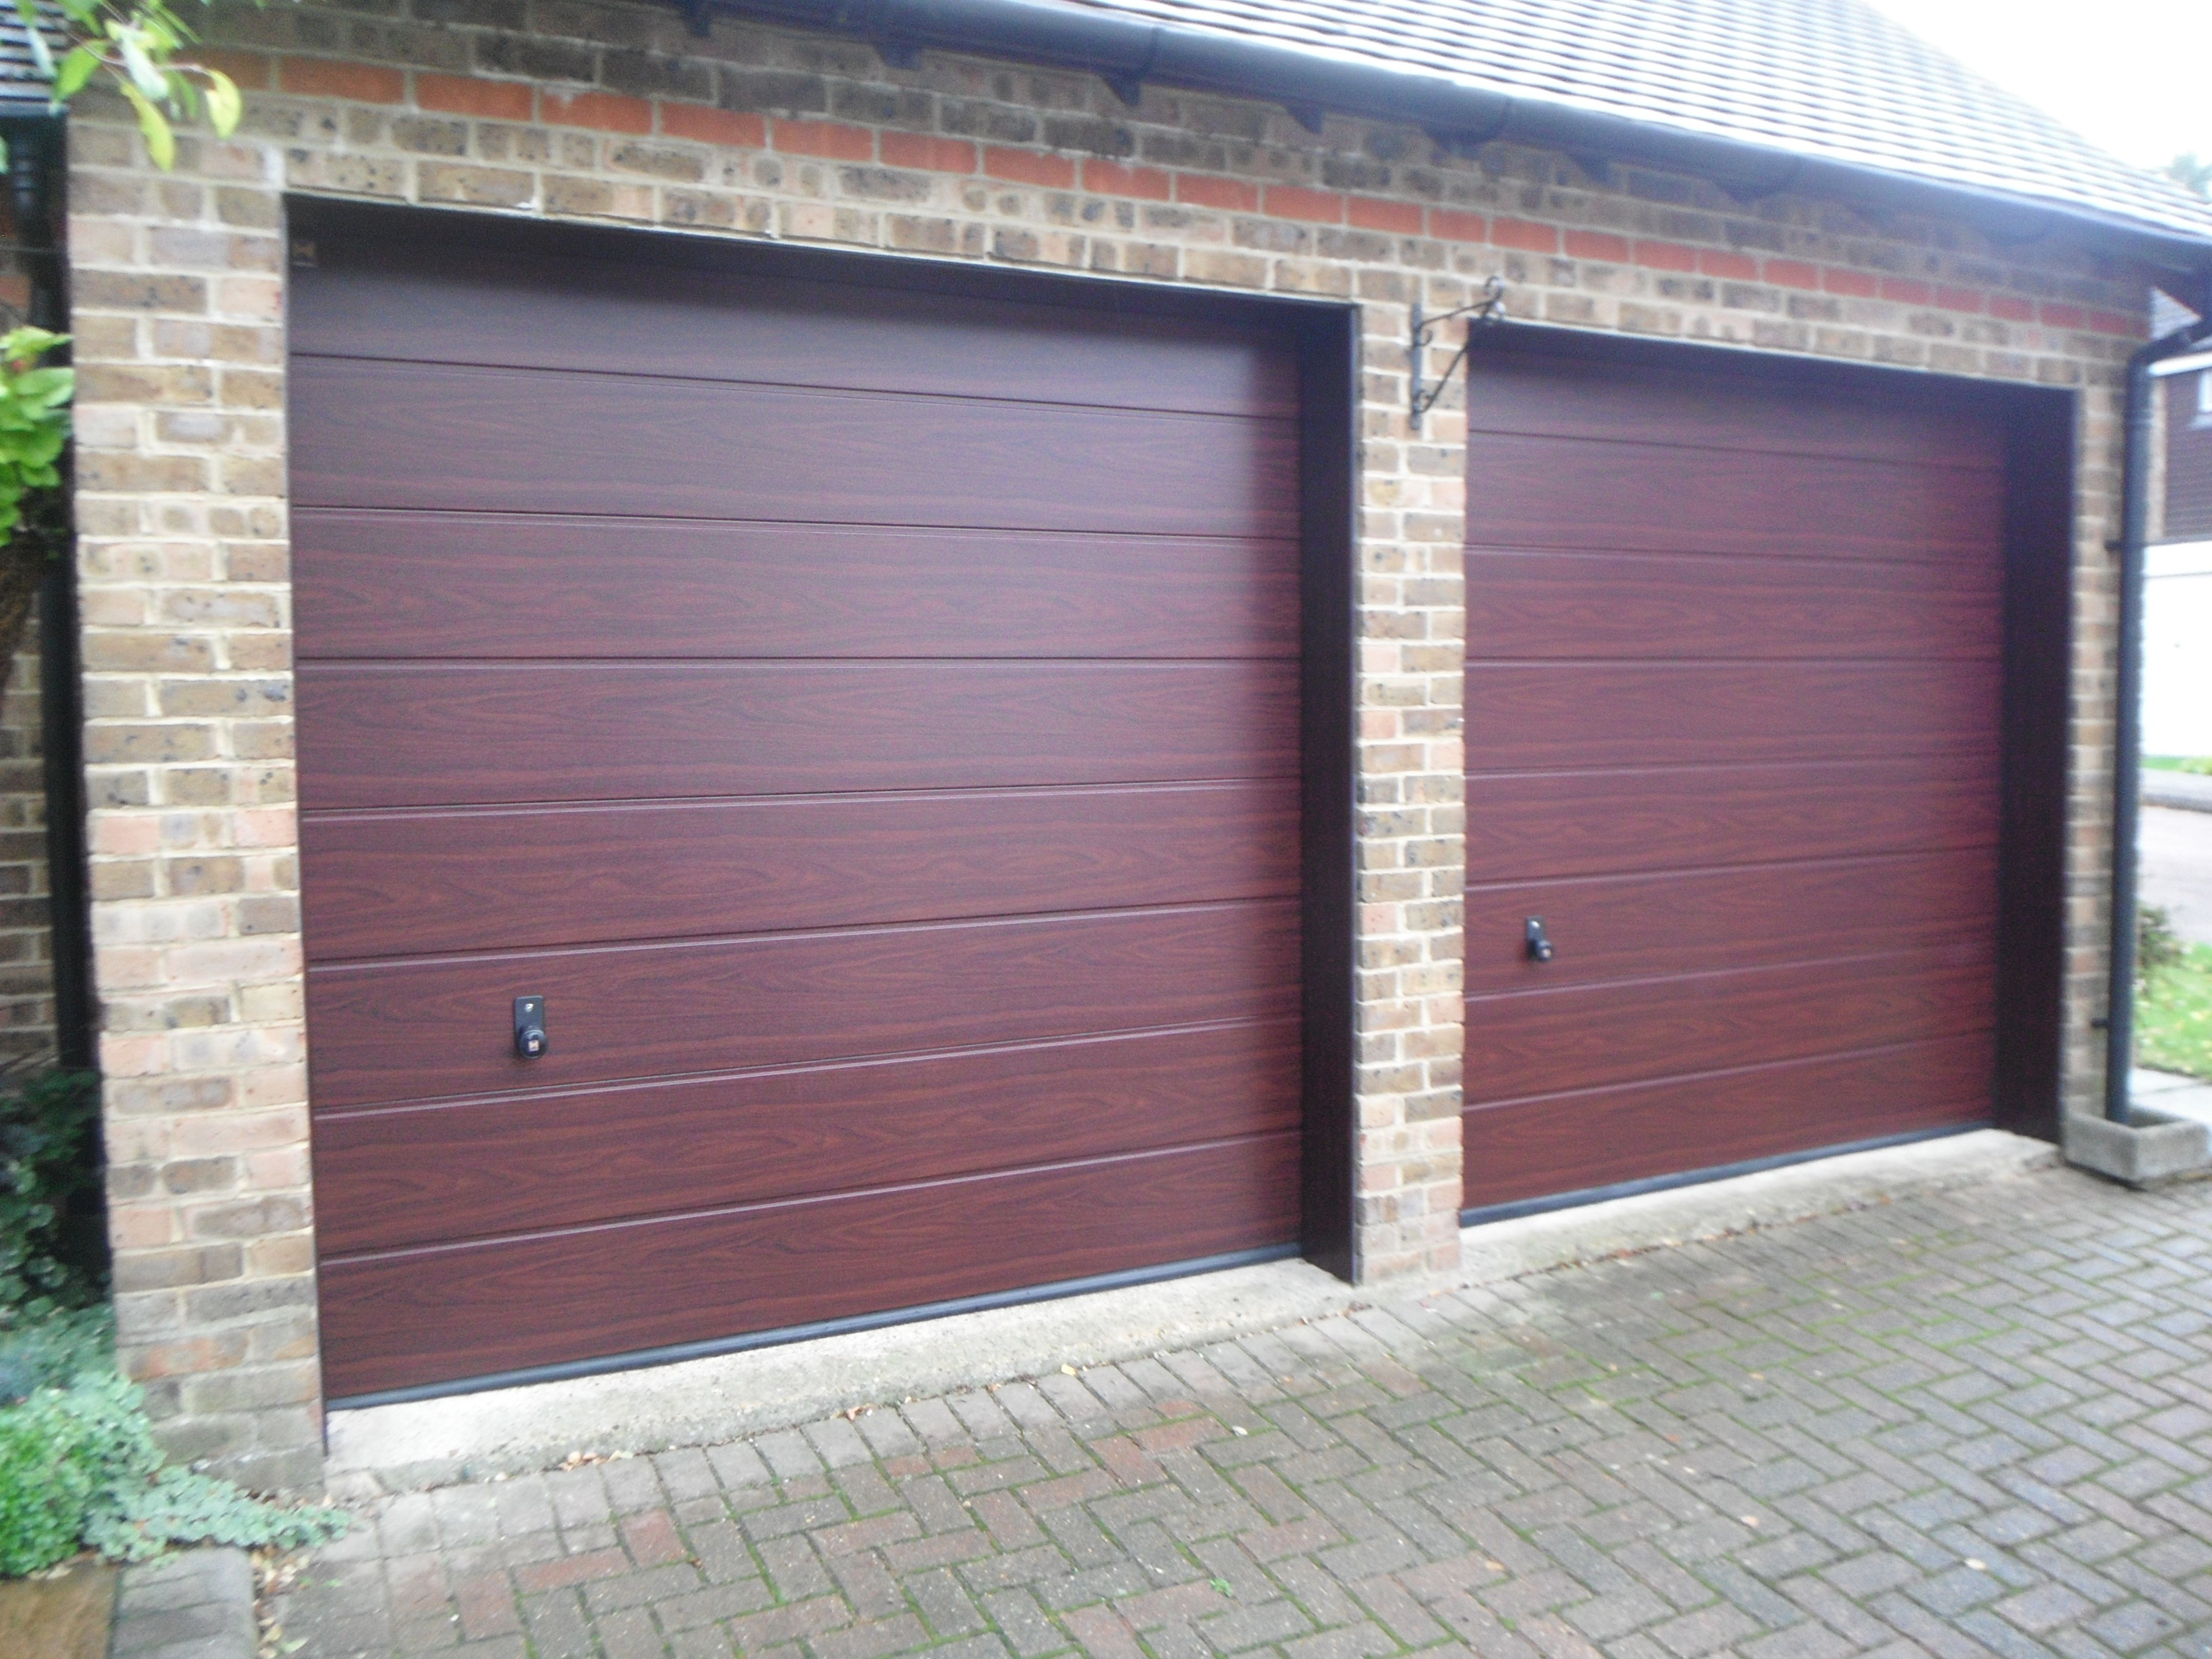 Doors and sidelights matching window on front and black onduline roof - Hormann M Ribbed Decograin Rosewood Sectional Garage Door With Black Handles